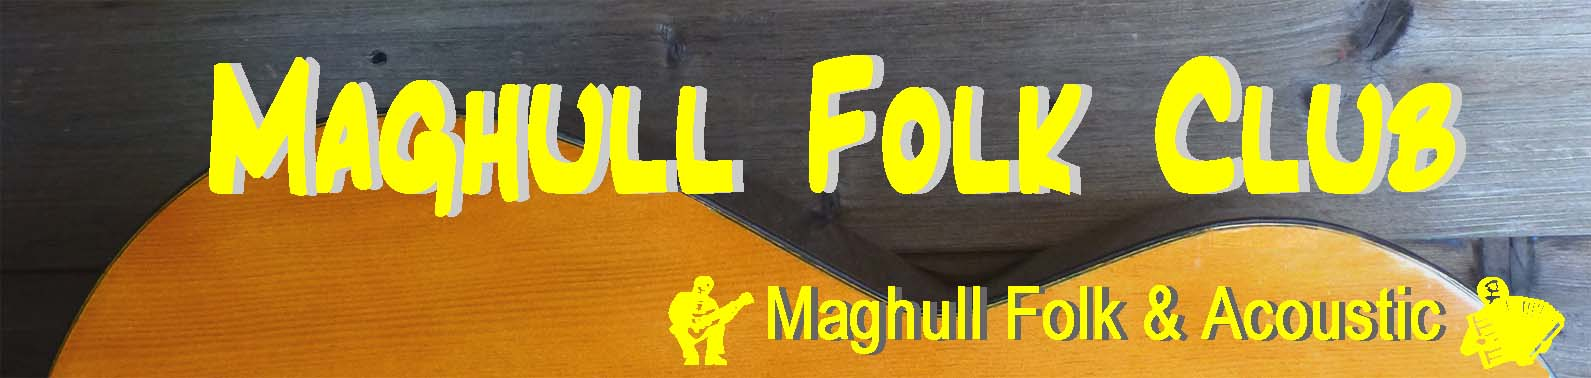 Maghull Folk Club